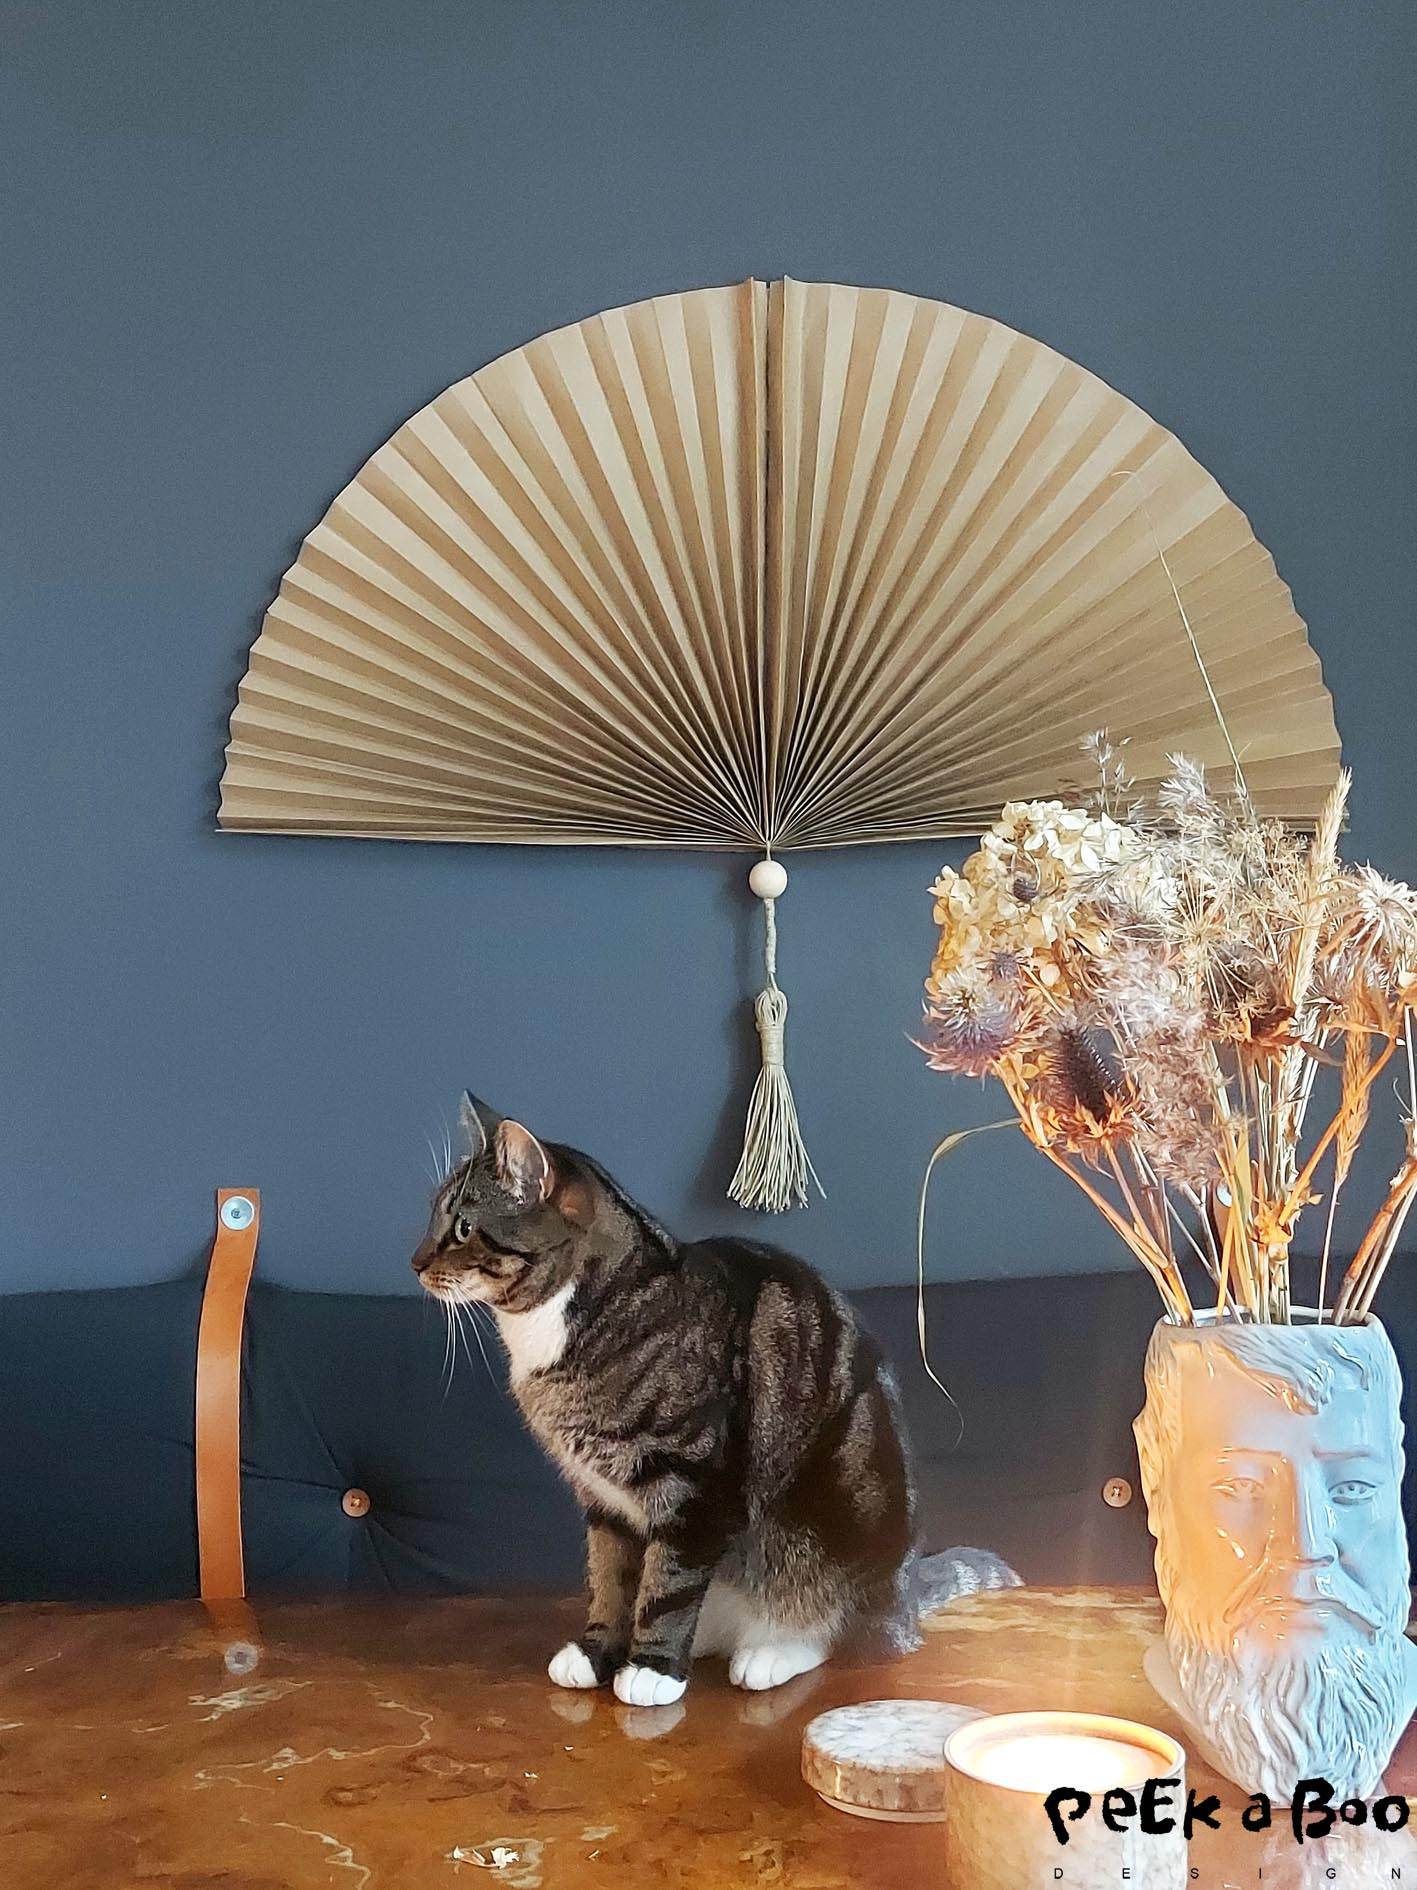 Make this exclusive looking paper fan from ordinary brown wrapping paper.